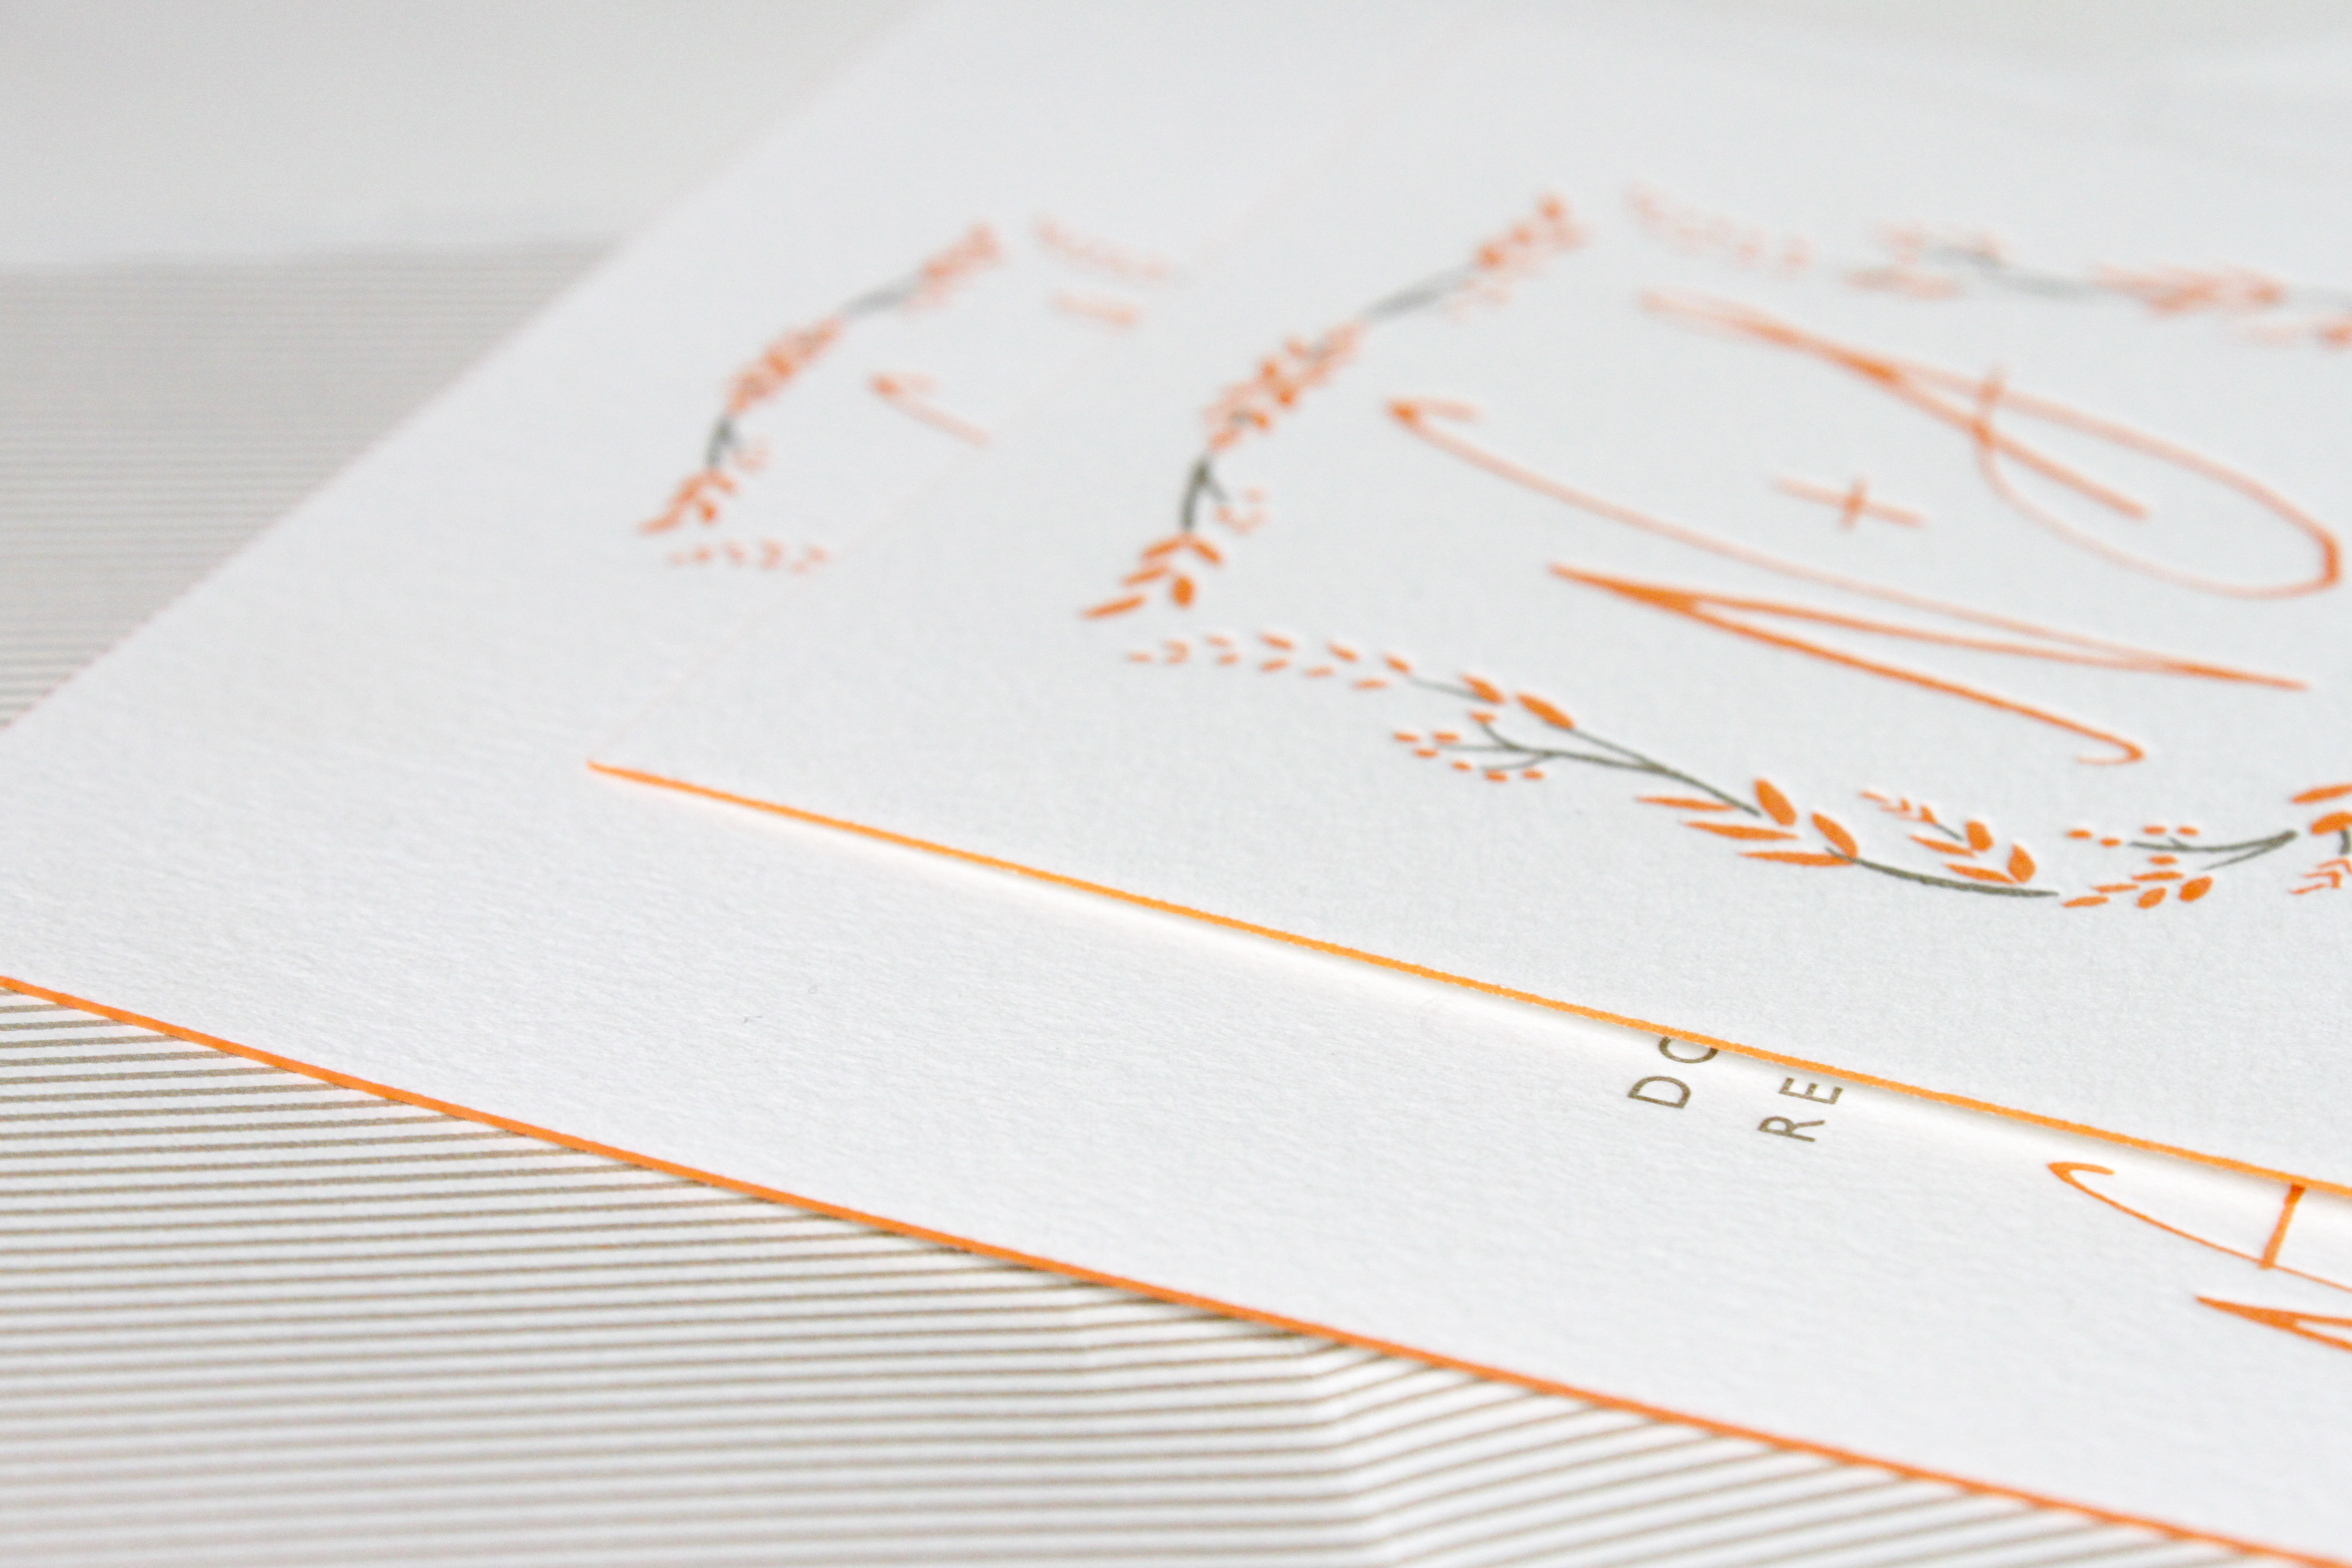 Coral ddge painted letterpress wedding invitations | via Wordshop, Denver CO